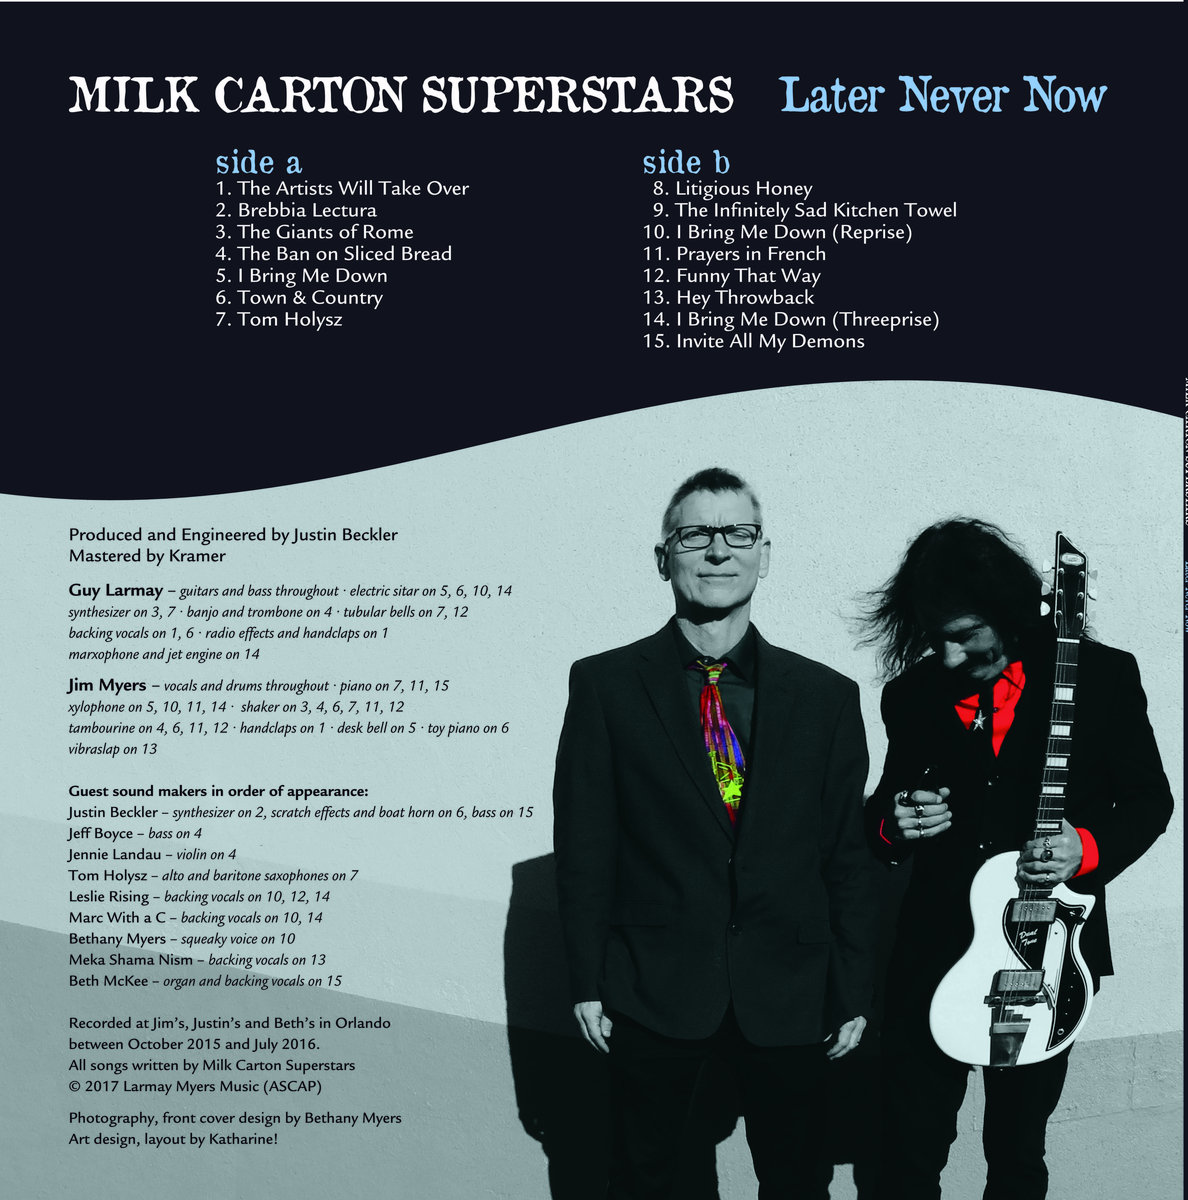 Later Never Now | Milk Carton Superstars